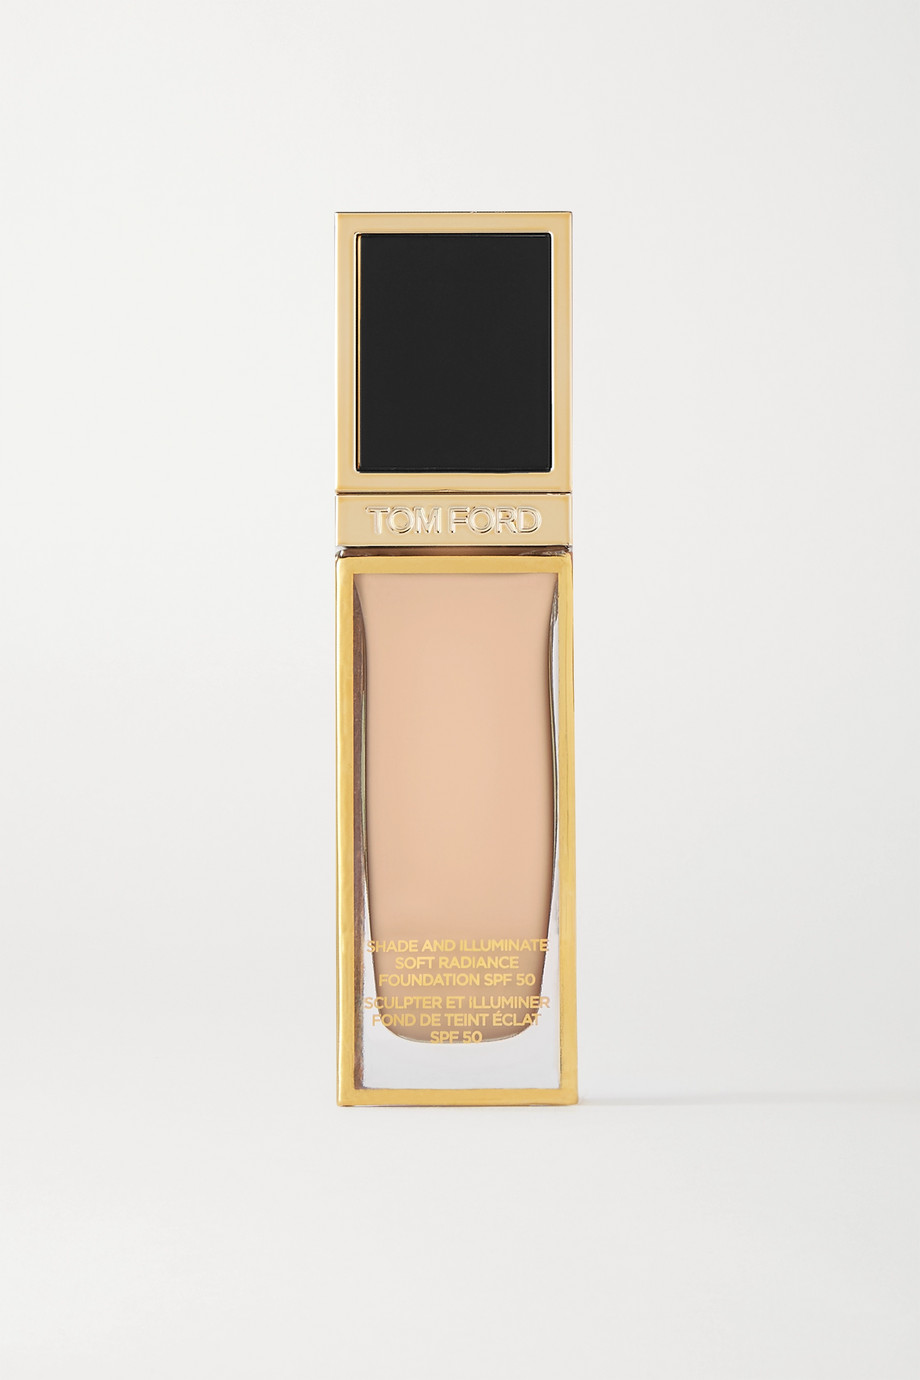 TOM FORD BEAUTY Shade and Illuminate Soft Radiance Foundation SPF50 - 0.0 Pearl, 30ml